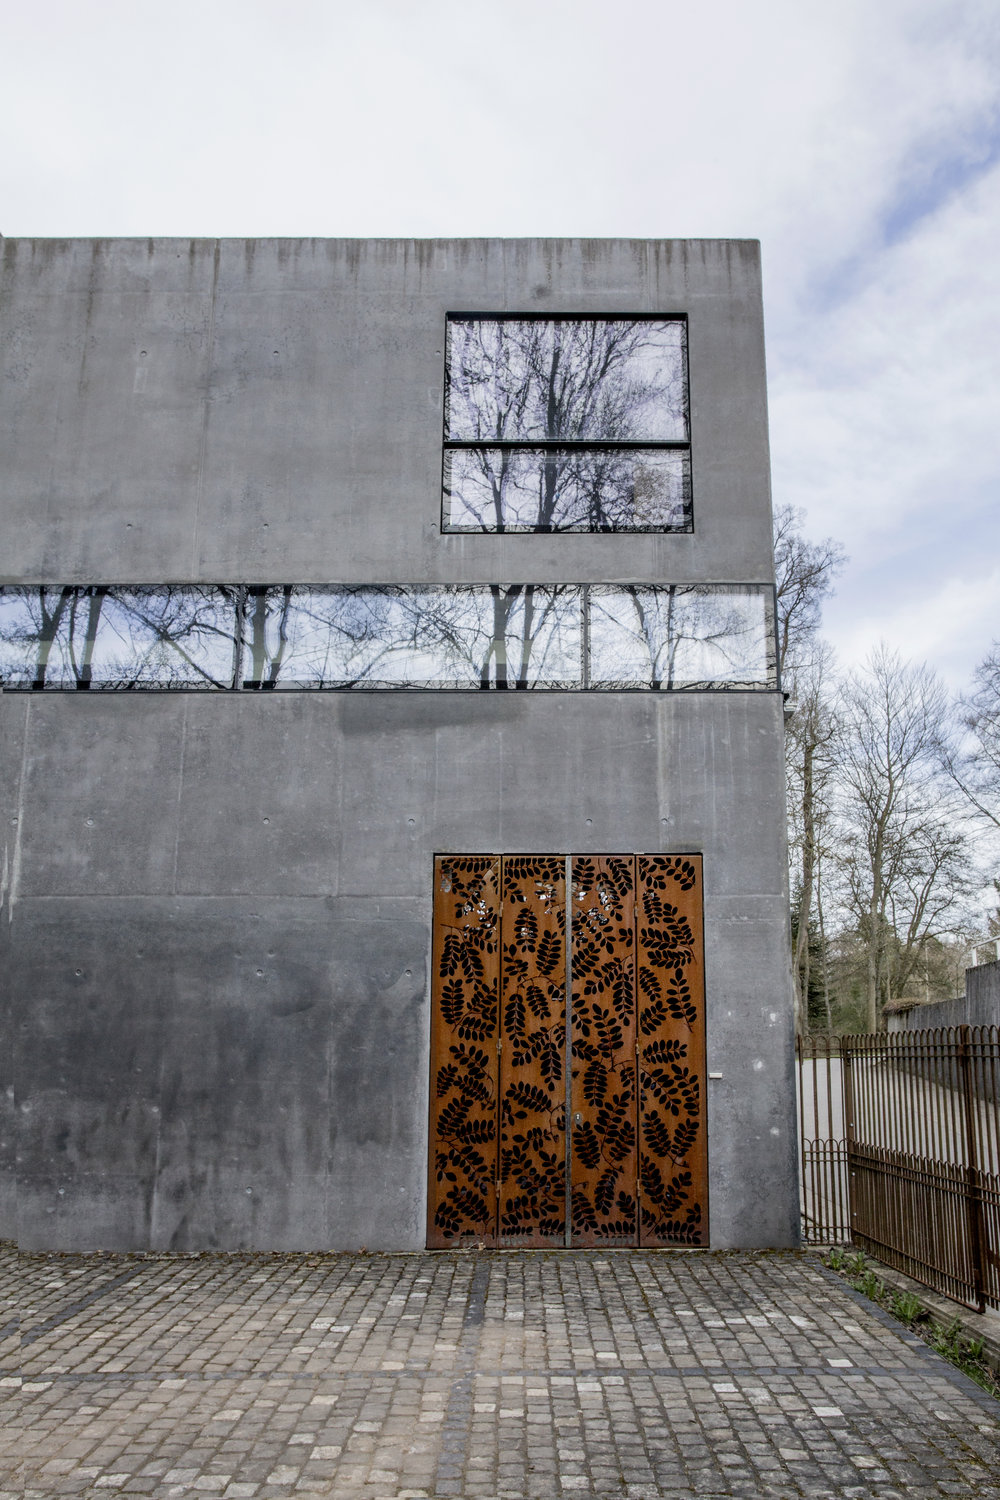 """Sheltered in the museum's new extension, designed by  Lukas Gäbele  and  Tana Raufer in 2009, highlighted by its remarquable """"Gate of the Artworks"""" in rusted iron."""